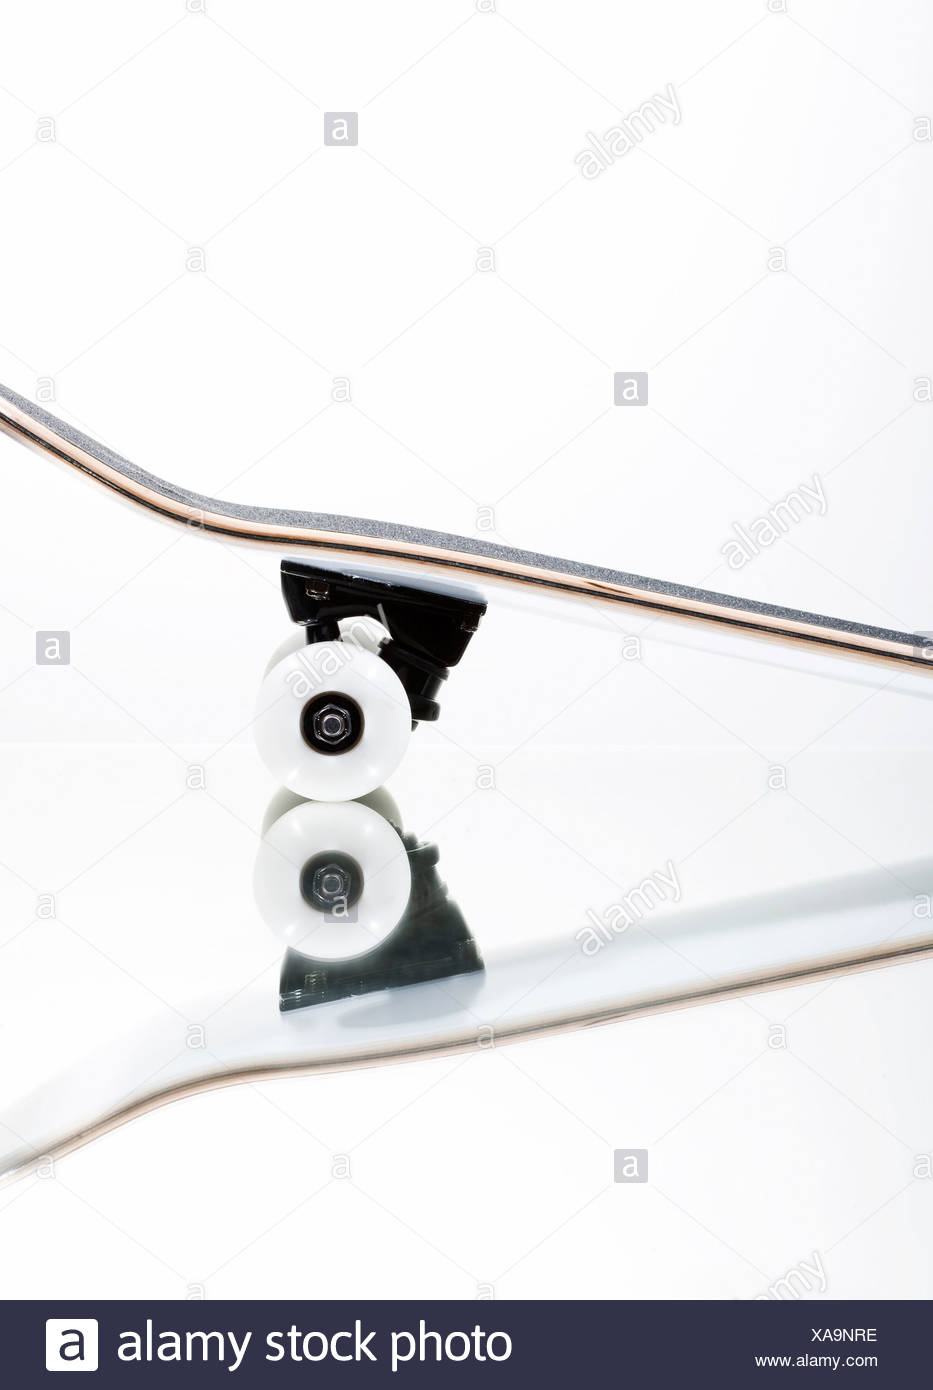 Skateboard on a mirror - Stock Image